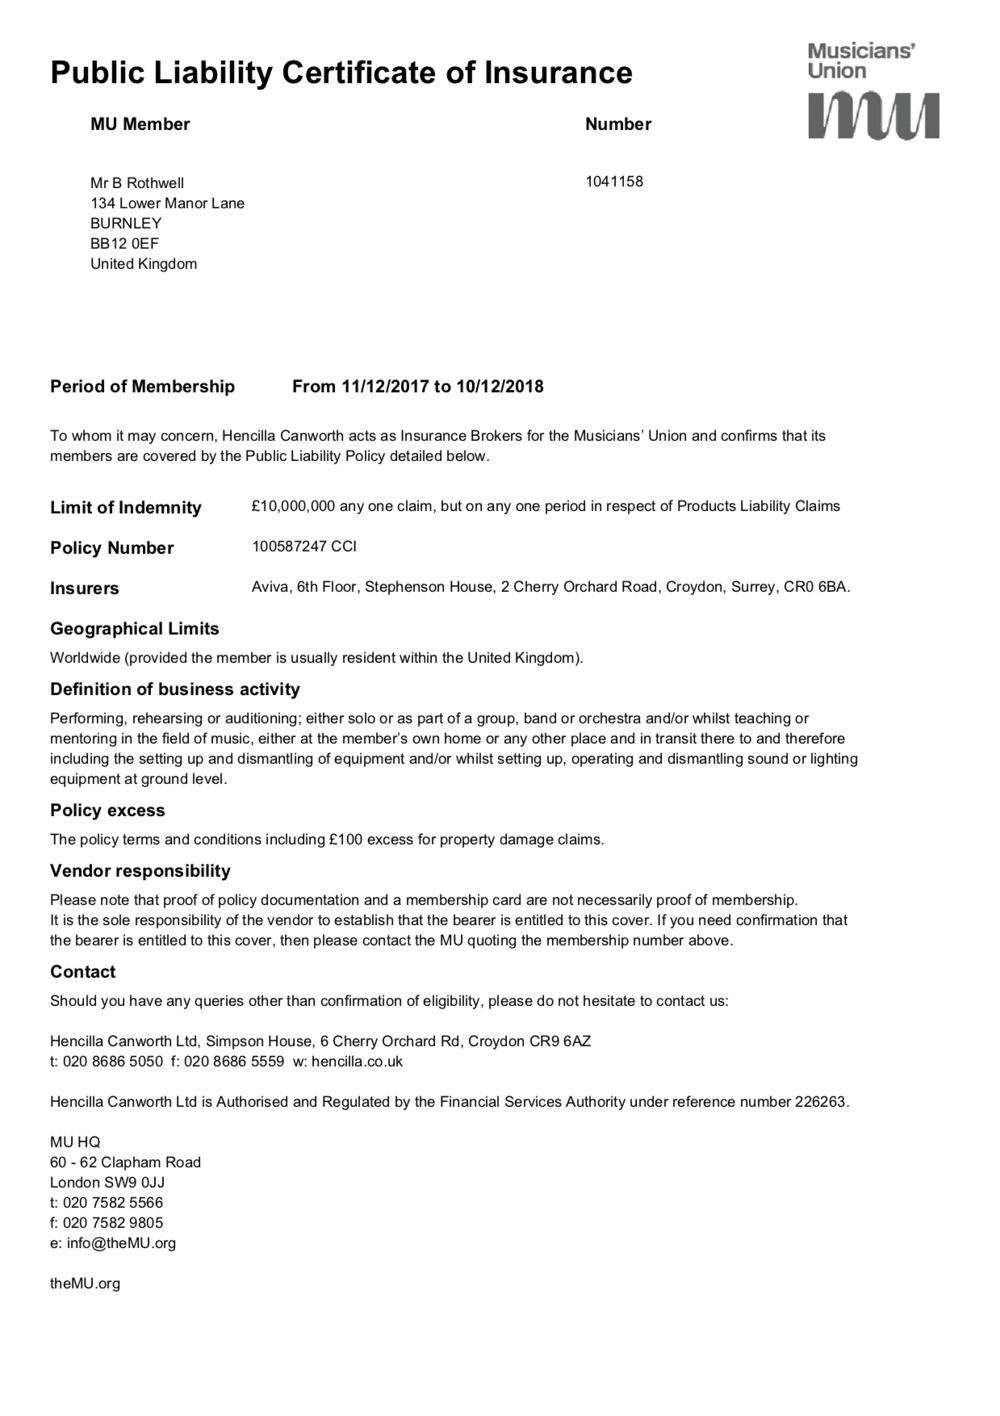 Ben Rothwell PLI Certificate PNG.png